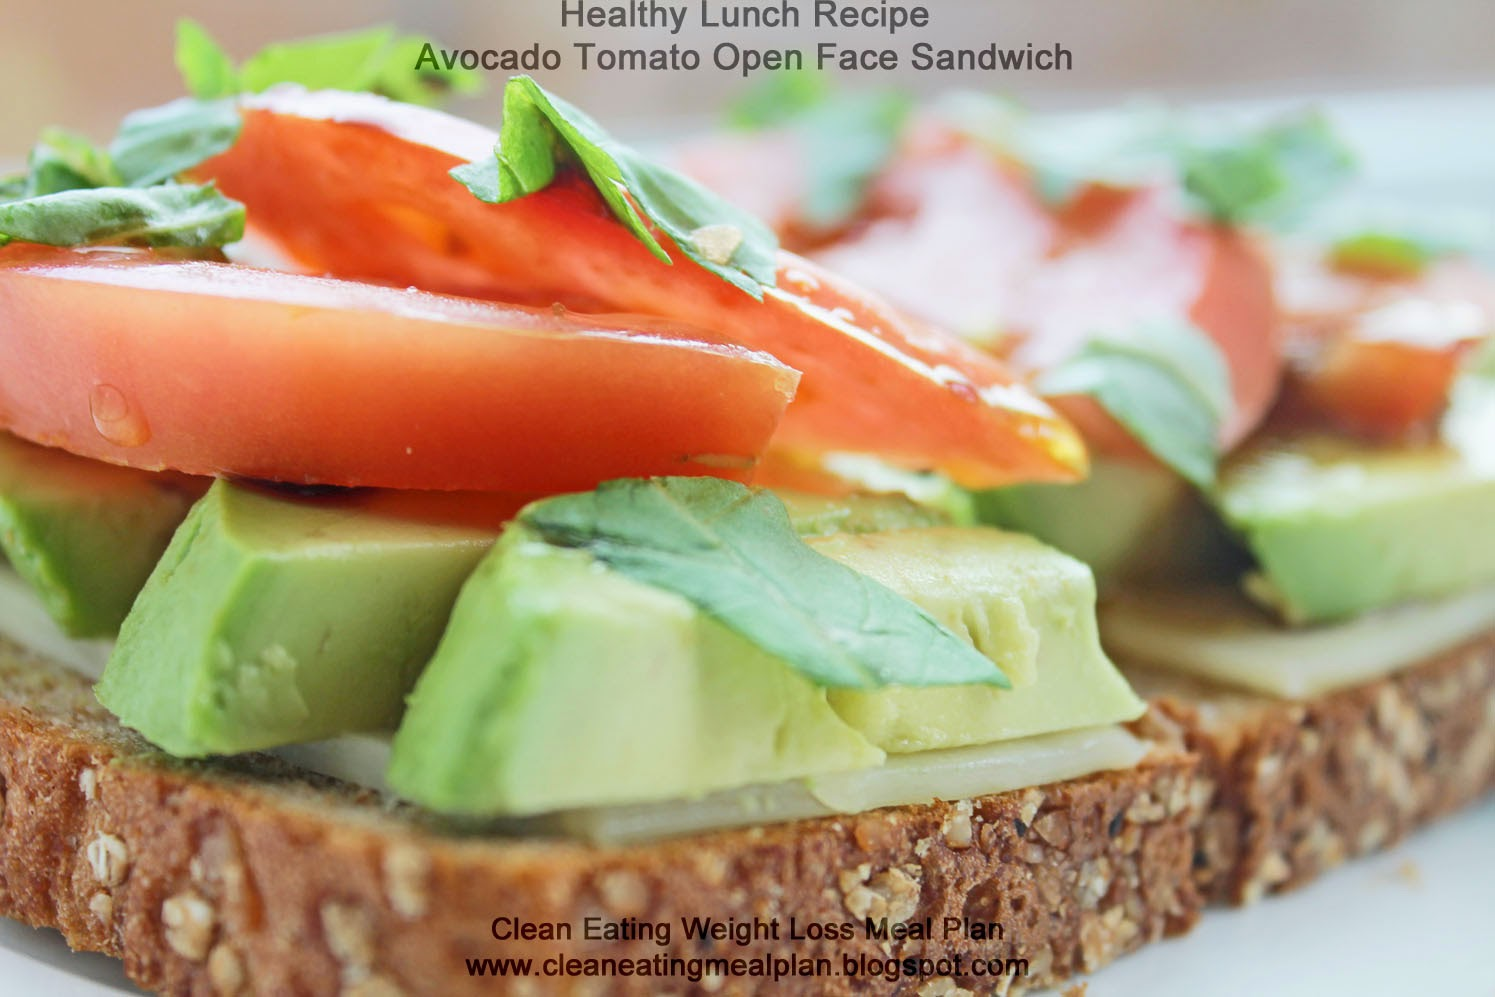 Healthy Lunch Recipe Avocado Tomato Open Face Sandwich